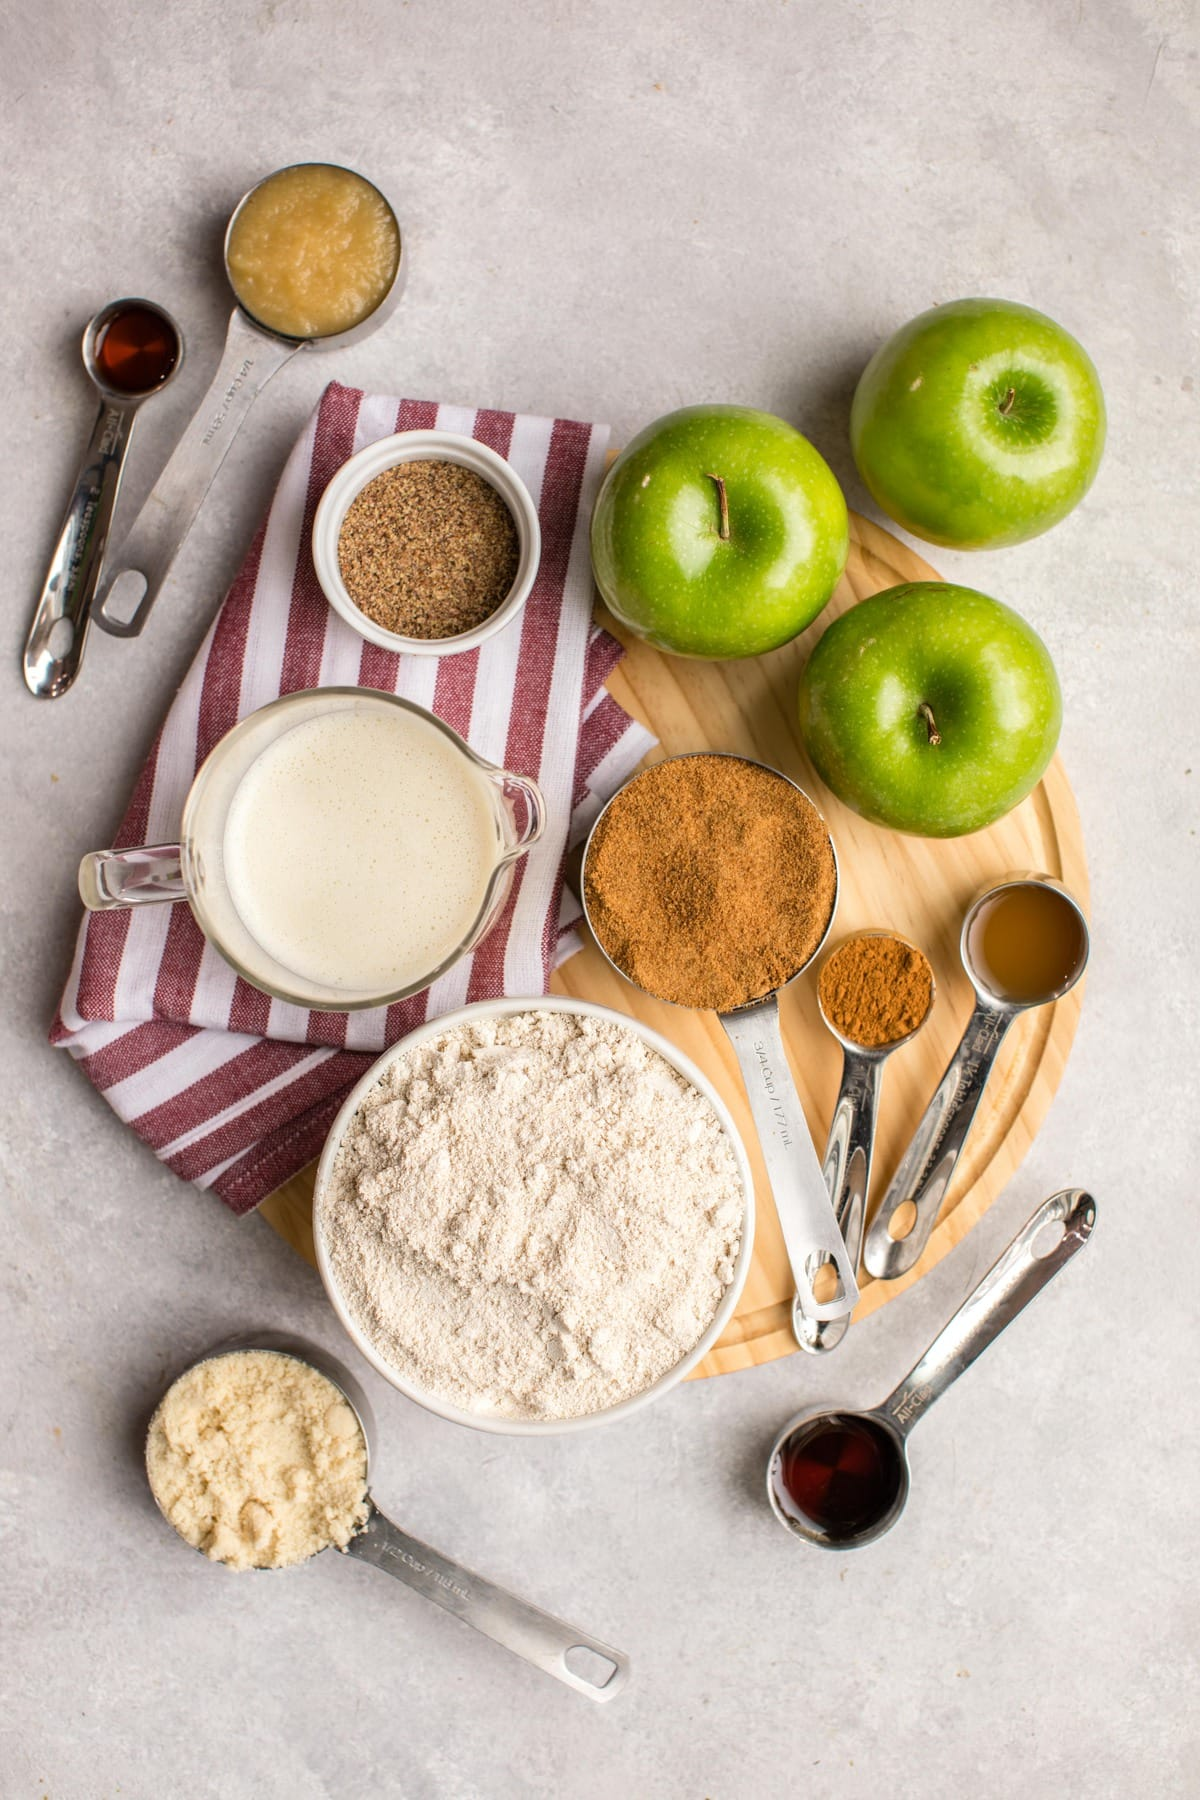 ingredients for apple cinnamon muffins on round wood cutting board with red striped napkin